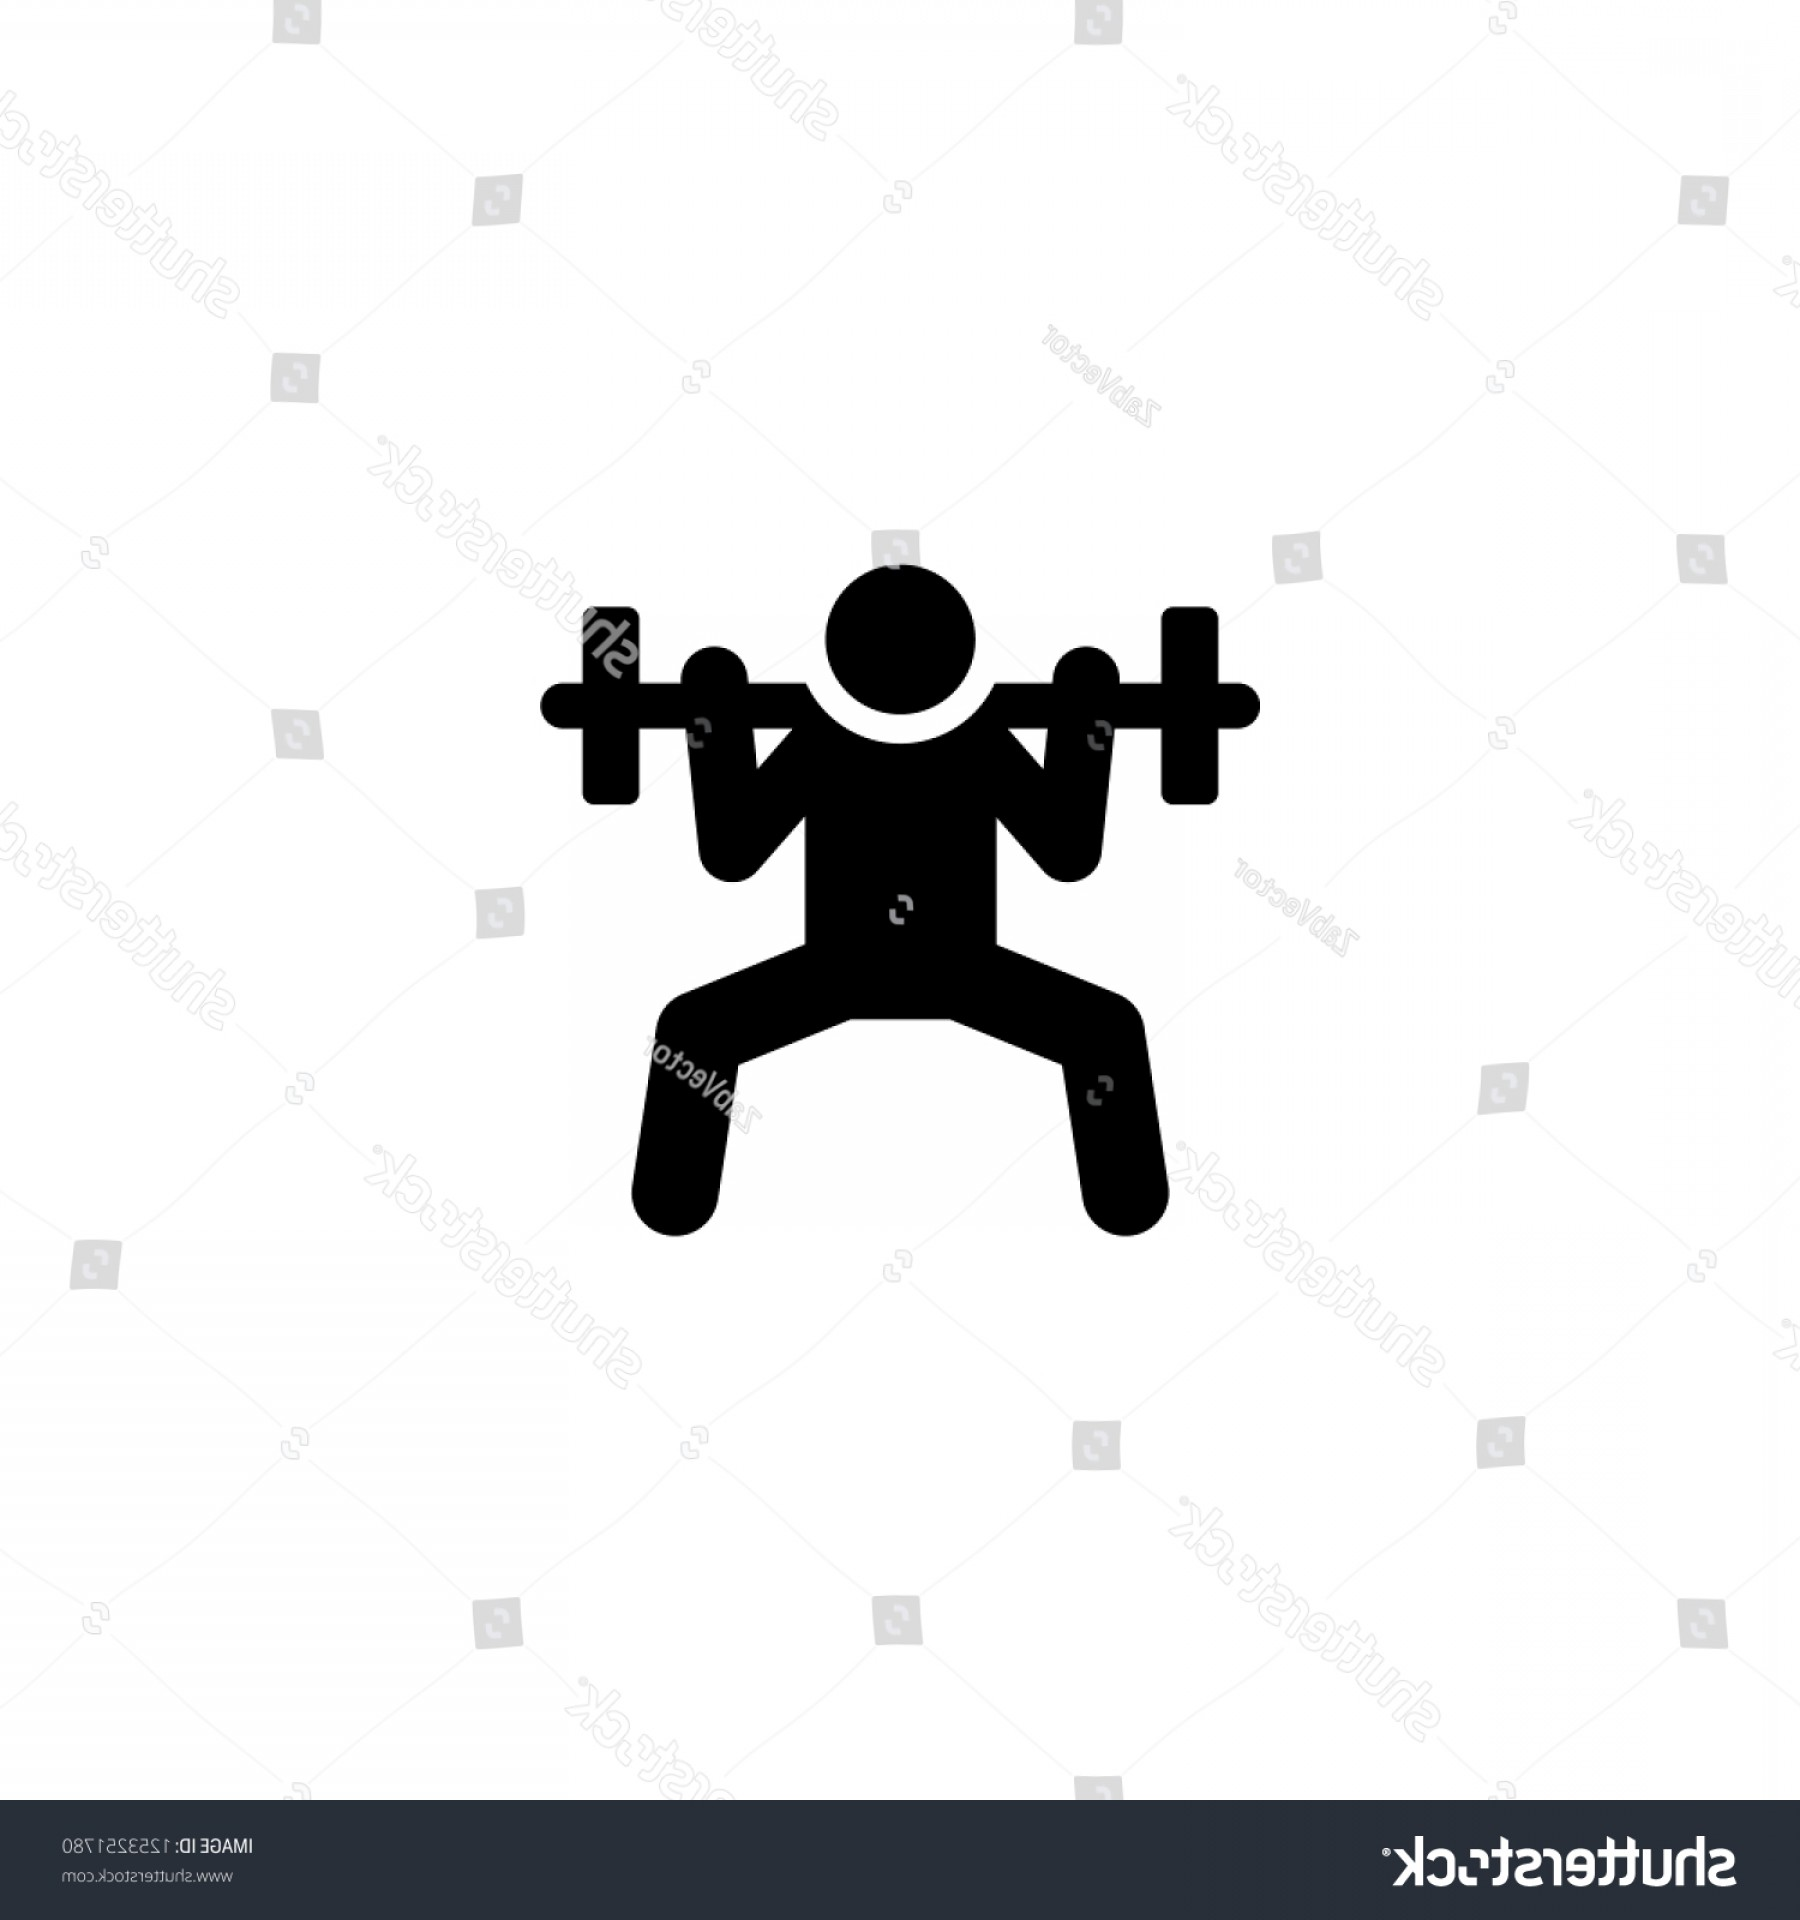 Weight Lifting Vector Graphics: Weightlifting Icon Vector Graphic Illustration